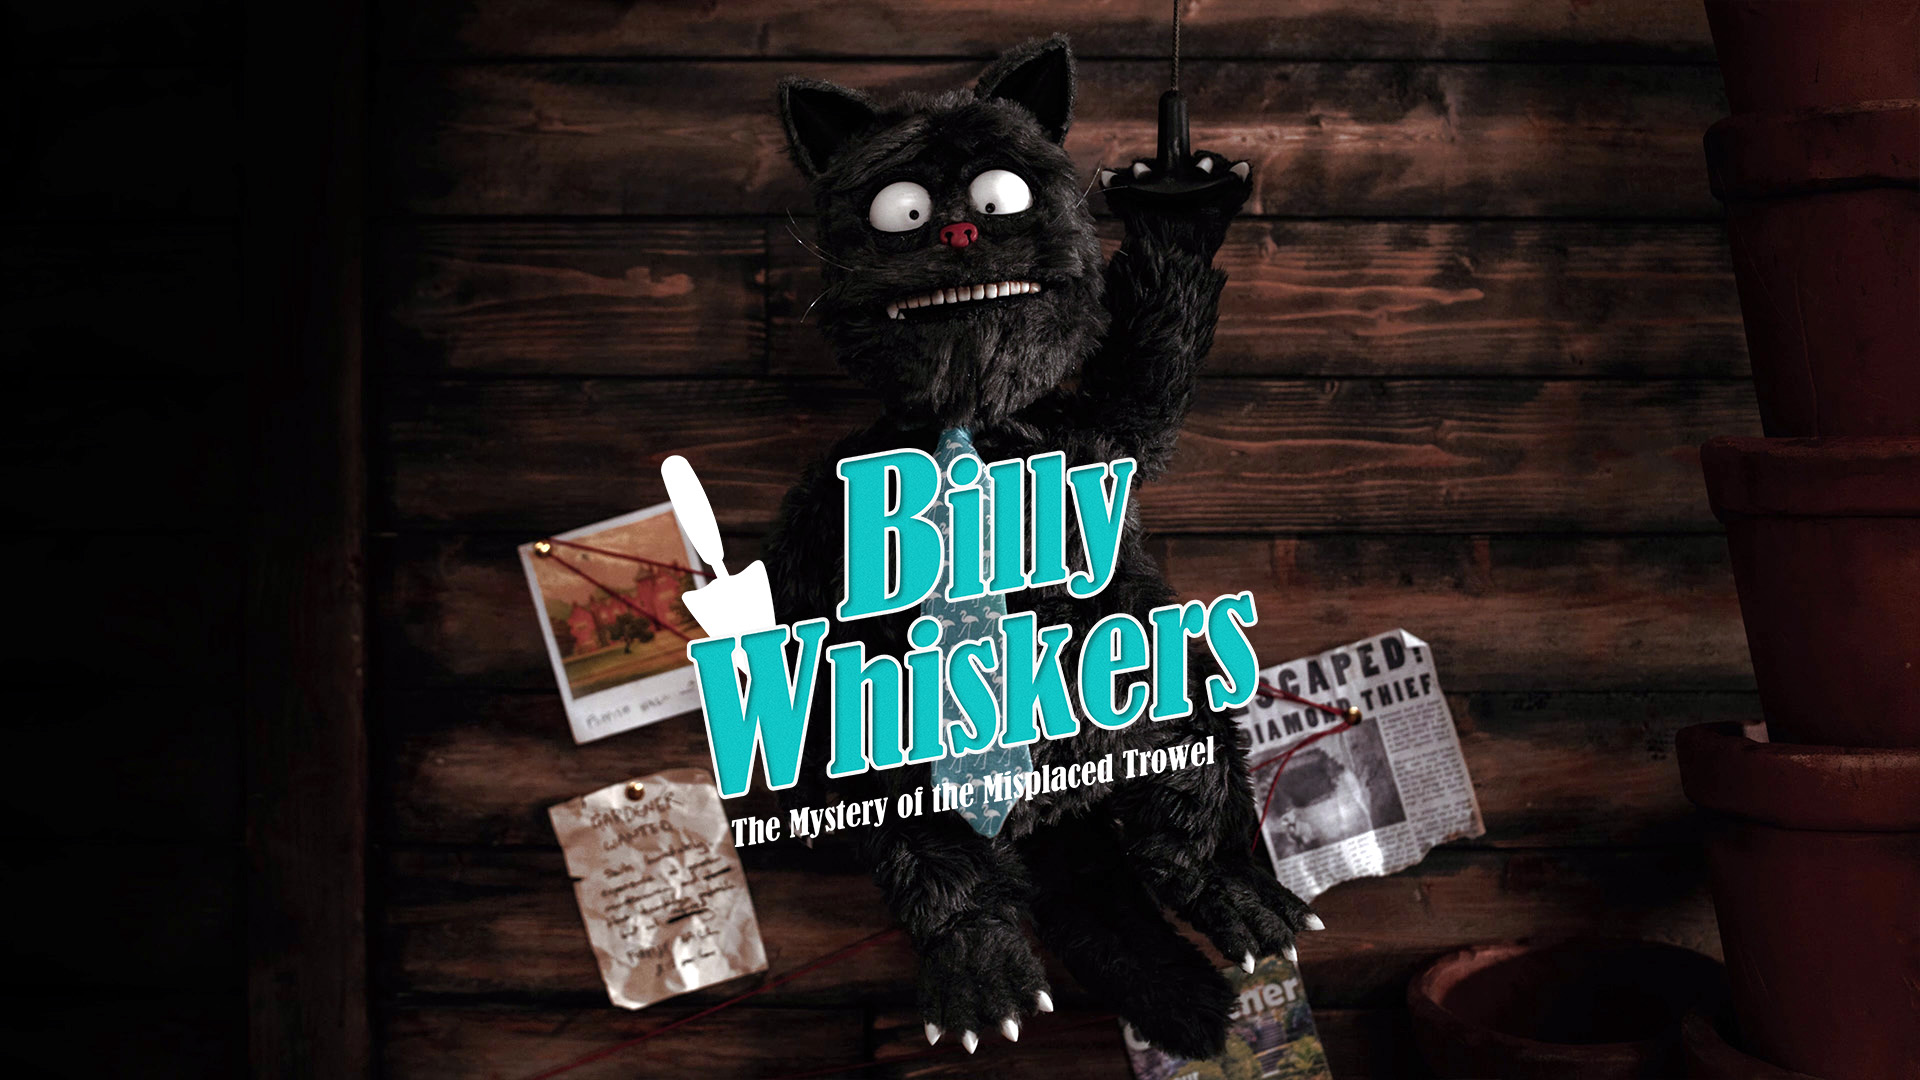 Billy Whiskers - The Mystery of the Misplaced Trowel